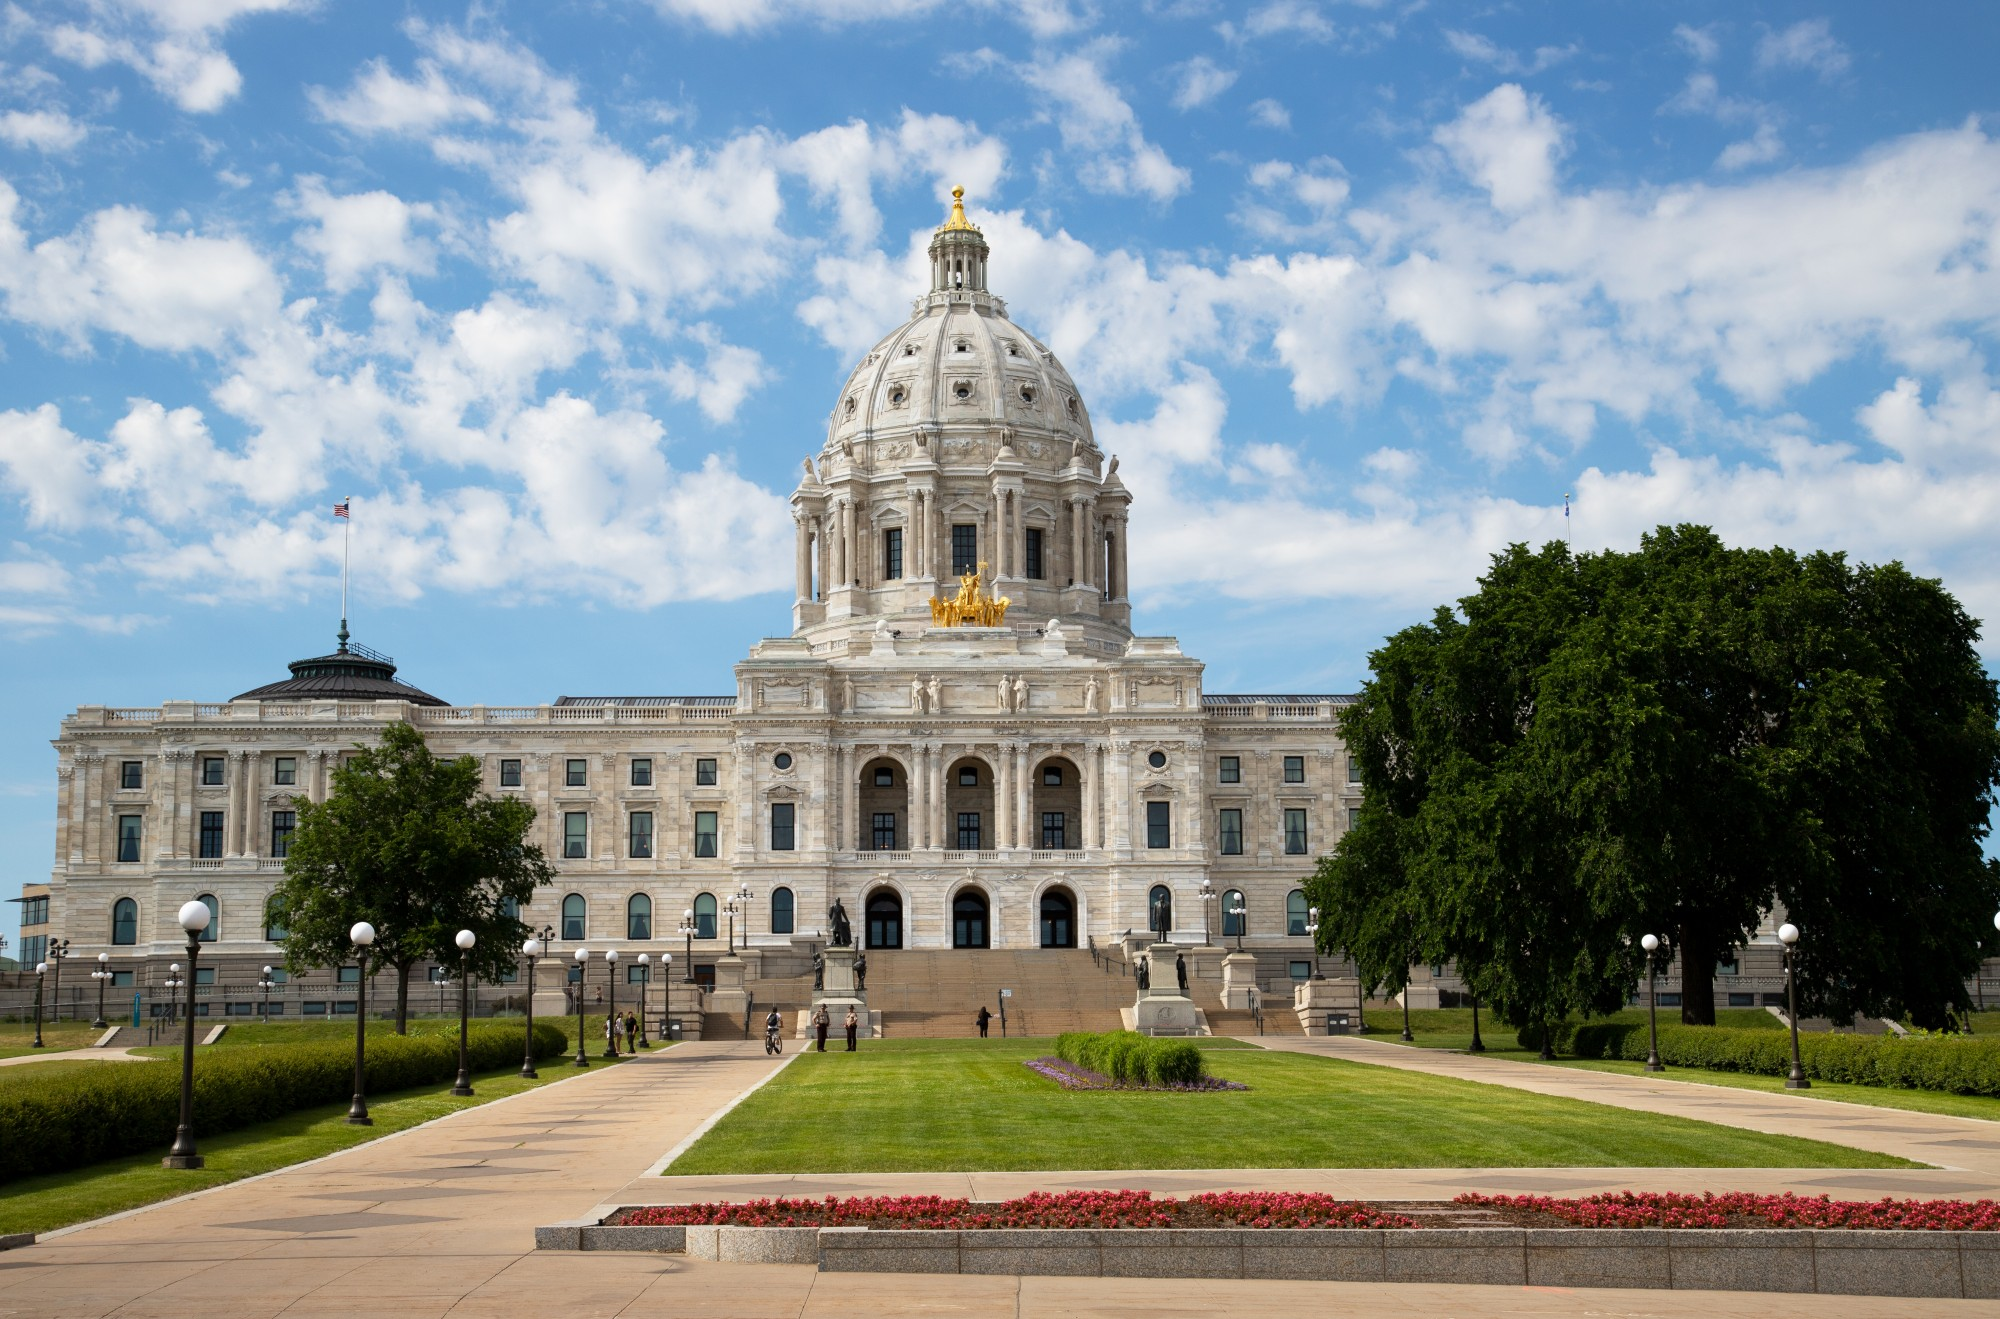 Minnesota State Capitol in St. Paul on Friday, June 13, 2020. (Minnesota Daily / Jasmin Kemp)